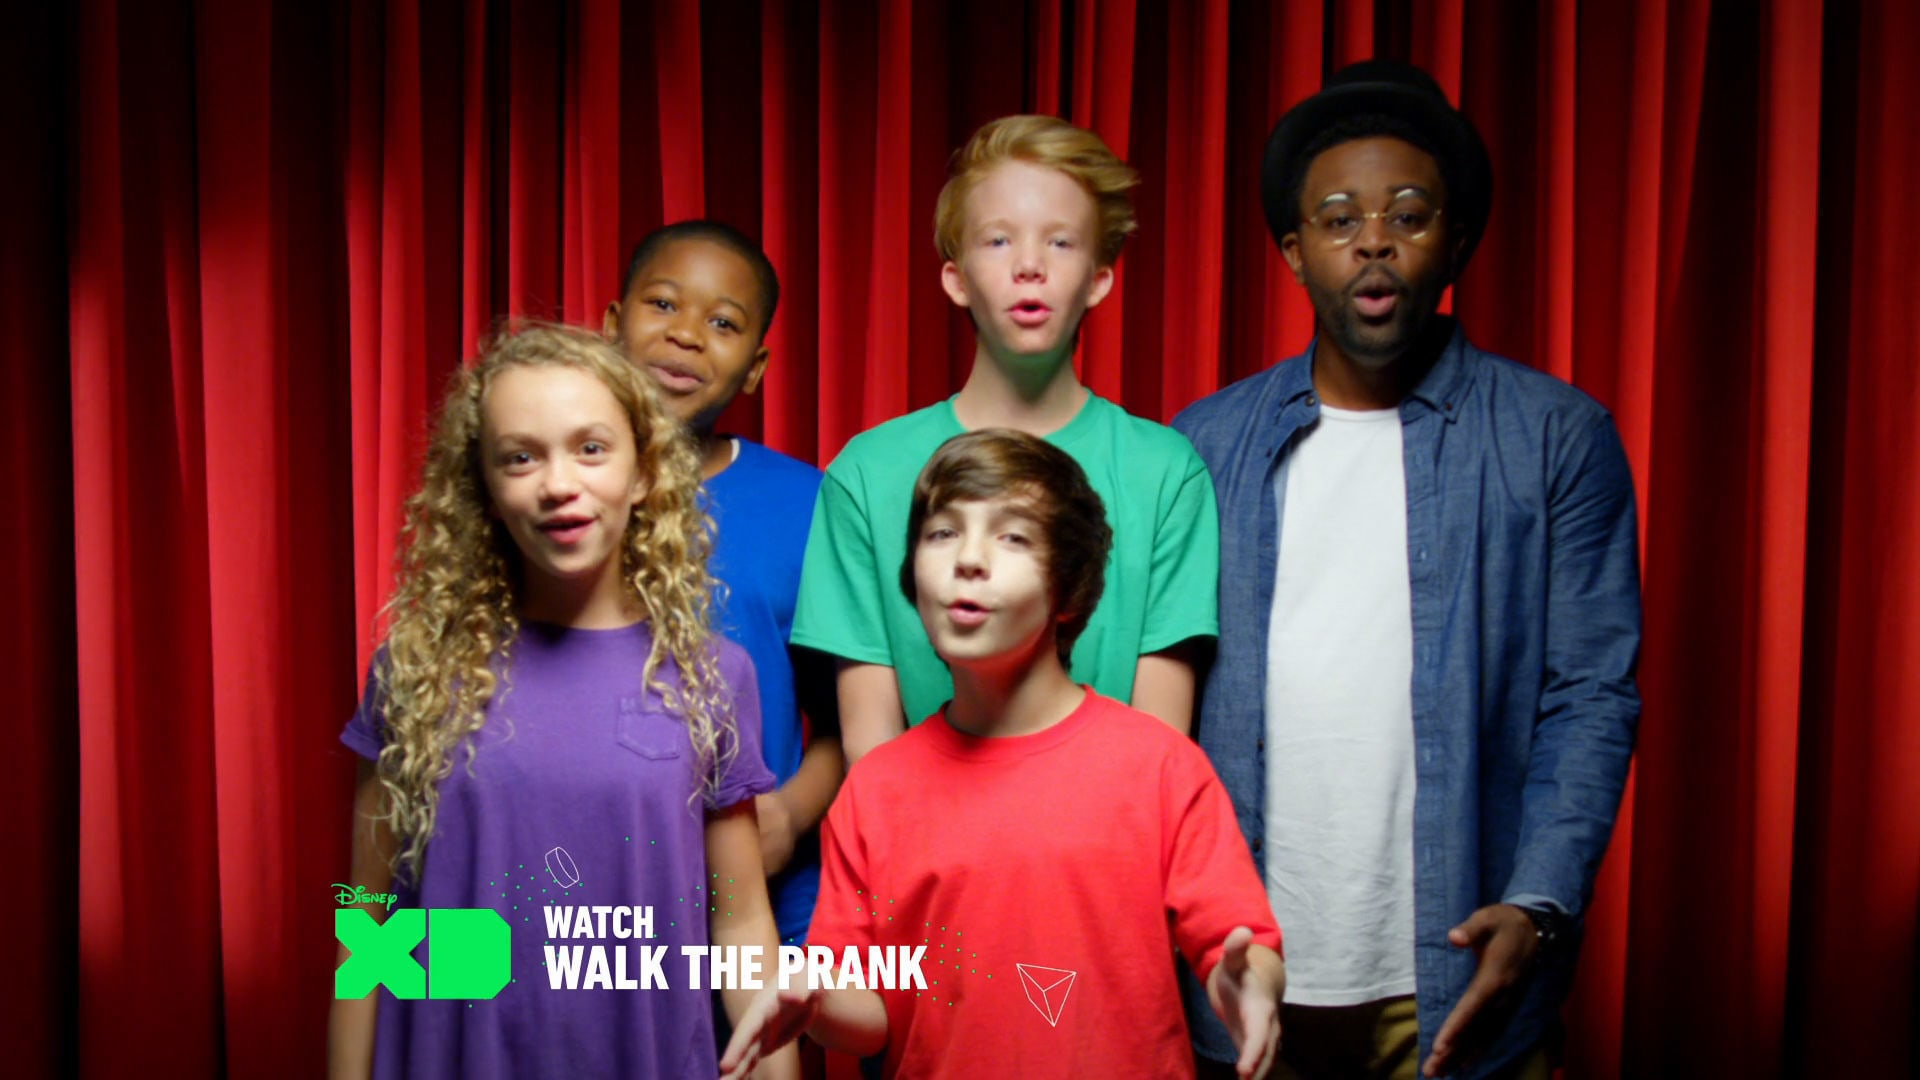 Walk the Prank Cast Sings DuckTales Theme